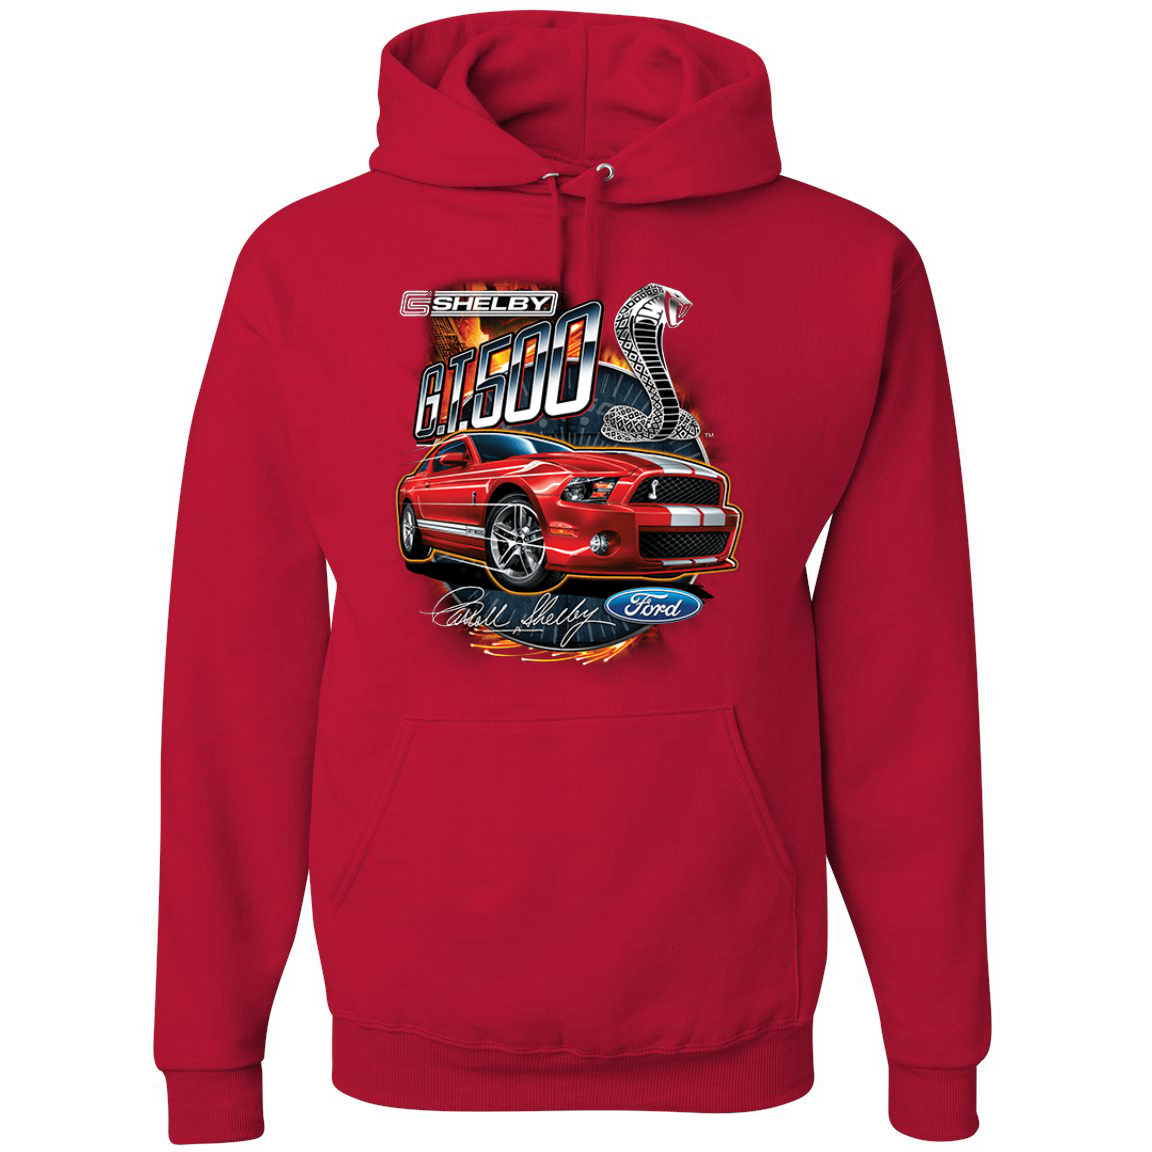 Shelby G.T. 500 Cobra Red Speedster Ford Motors Classic Cars and Trucks Graphic Hoodie Sweatshirt